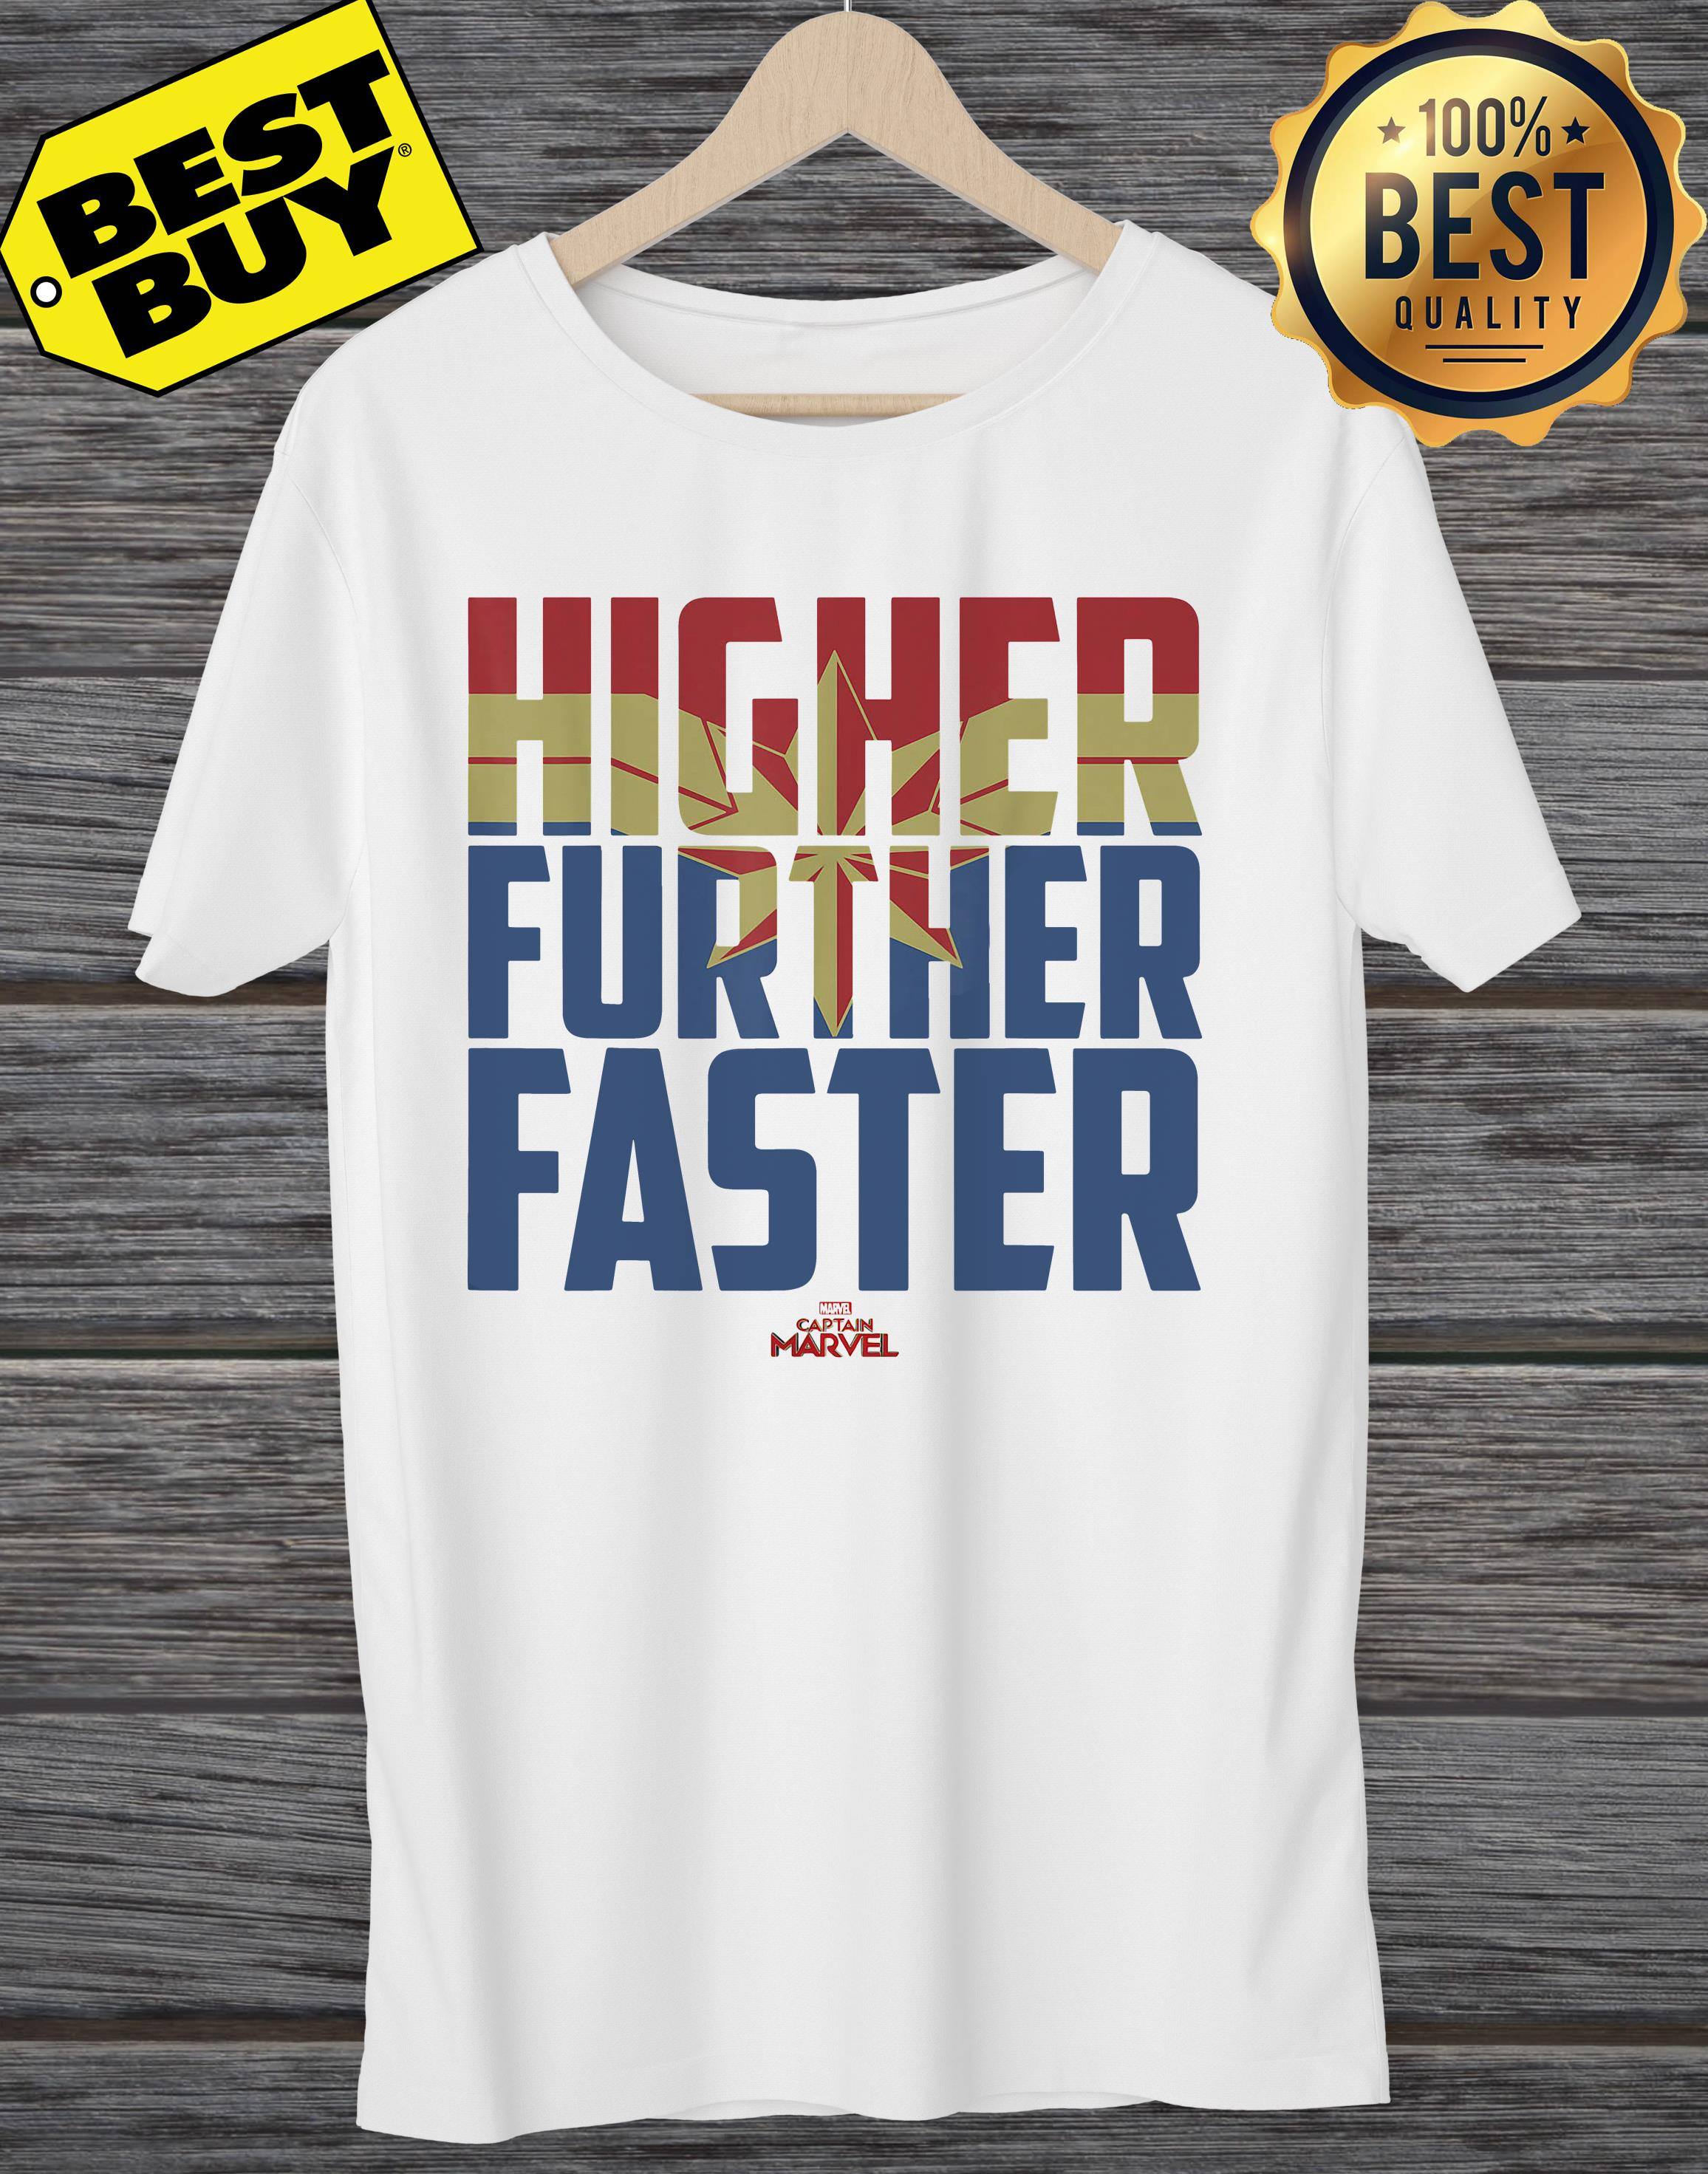 Captain Marvel Movie Higher Further Faster Graphic ladies tee